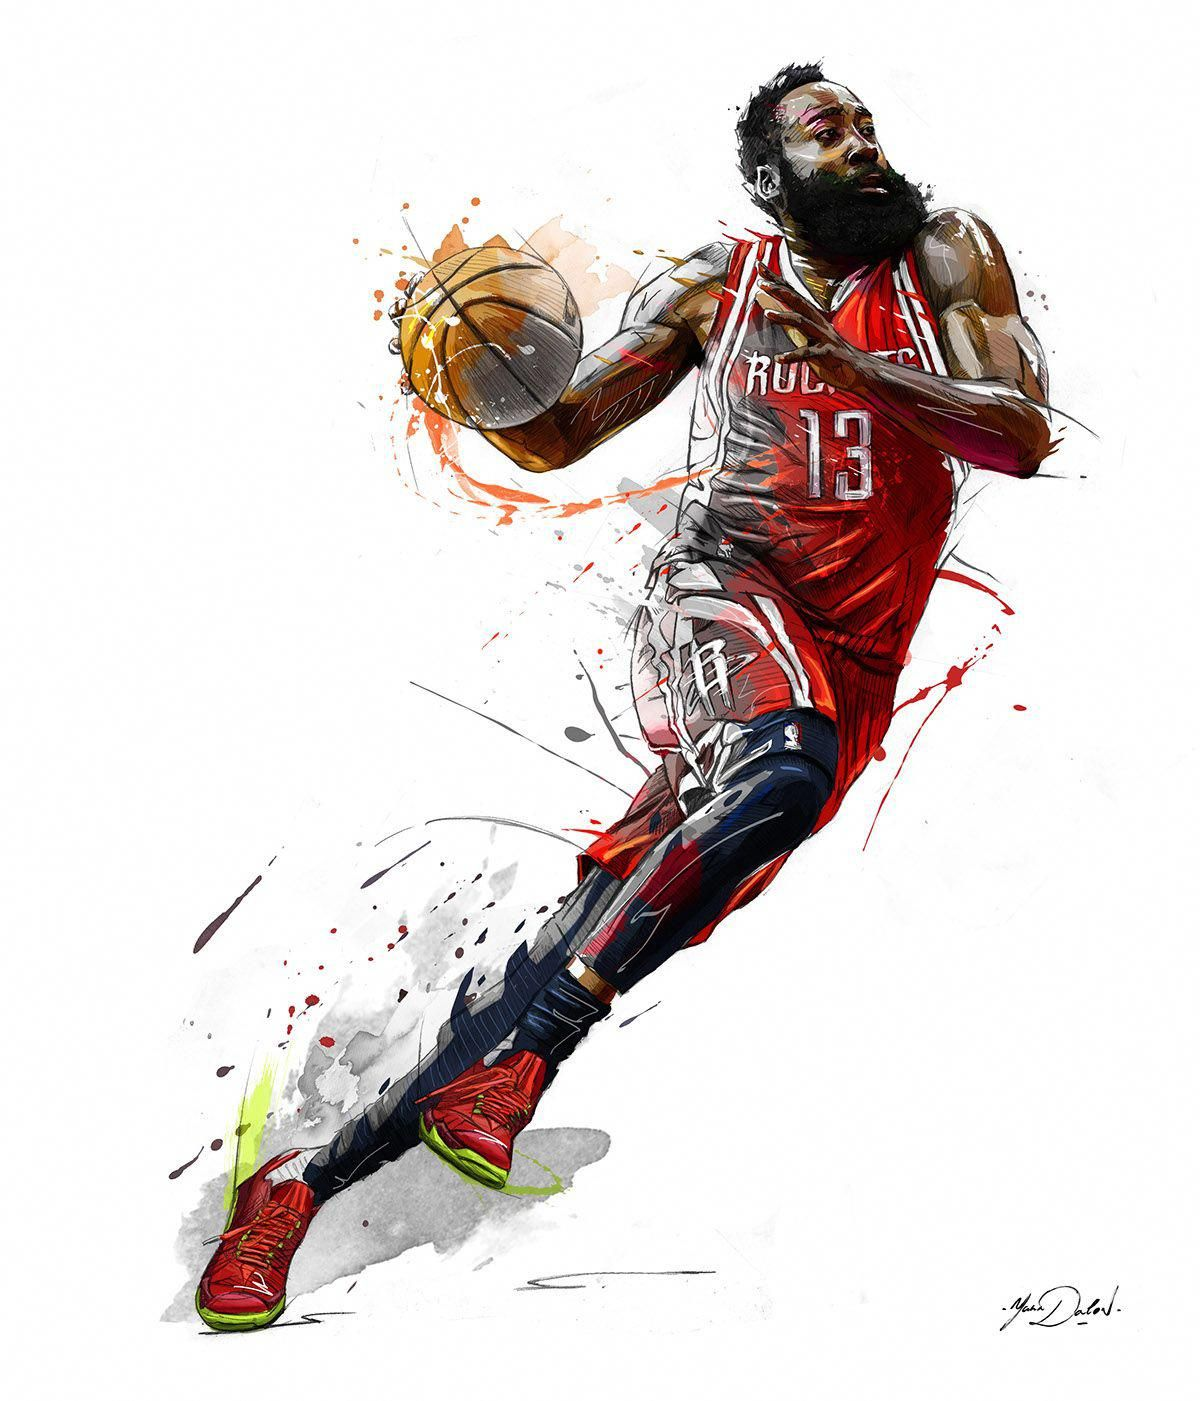 James Harden One Of The Great Finishers In The Paint His Downfall Is His Playmaking And Defense Above Aver Nba Basketball Art Nba Wallpapers Basketball Art